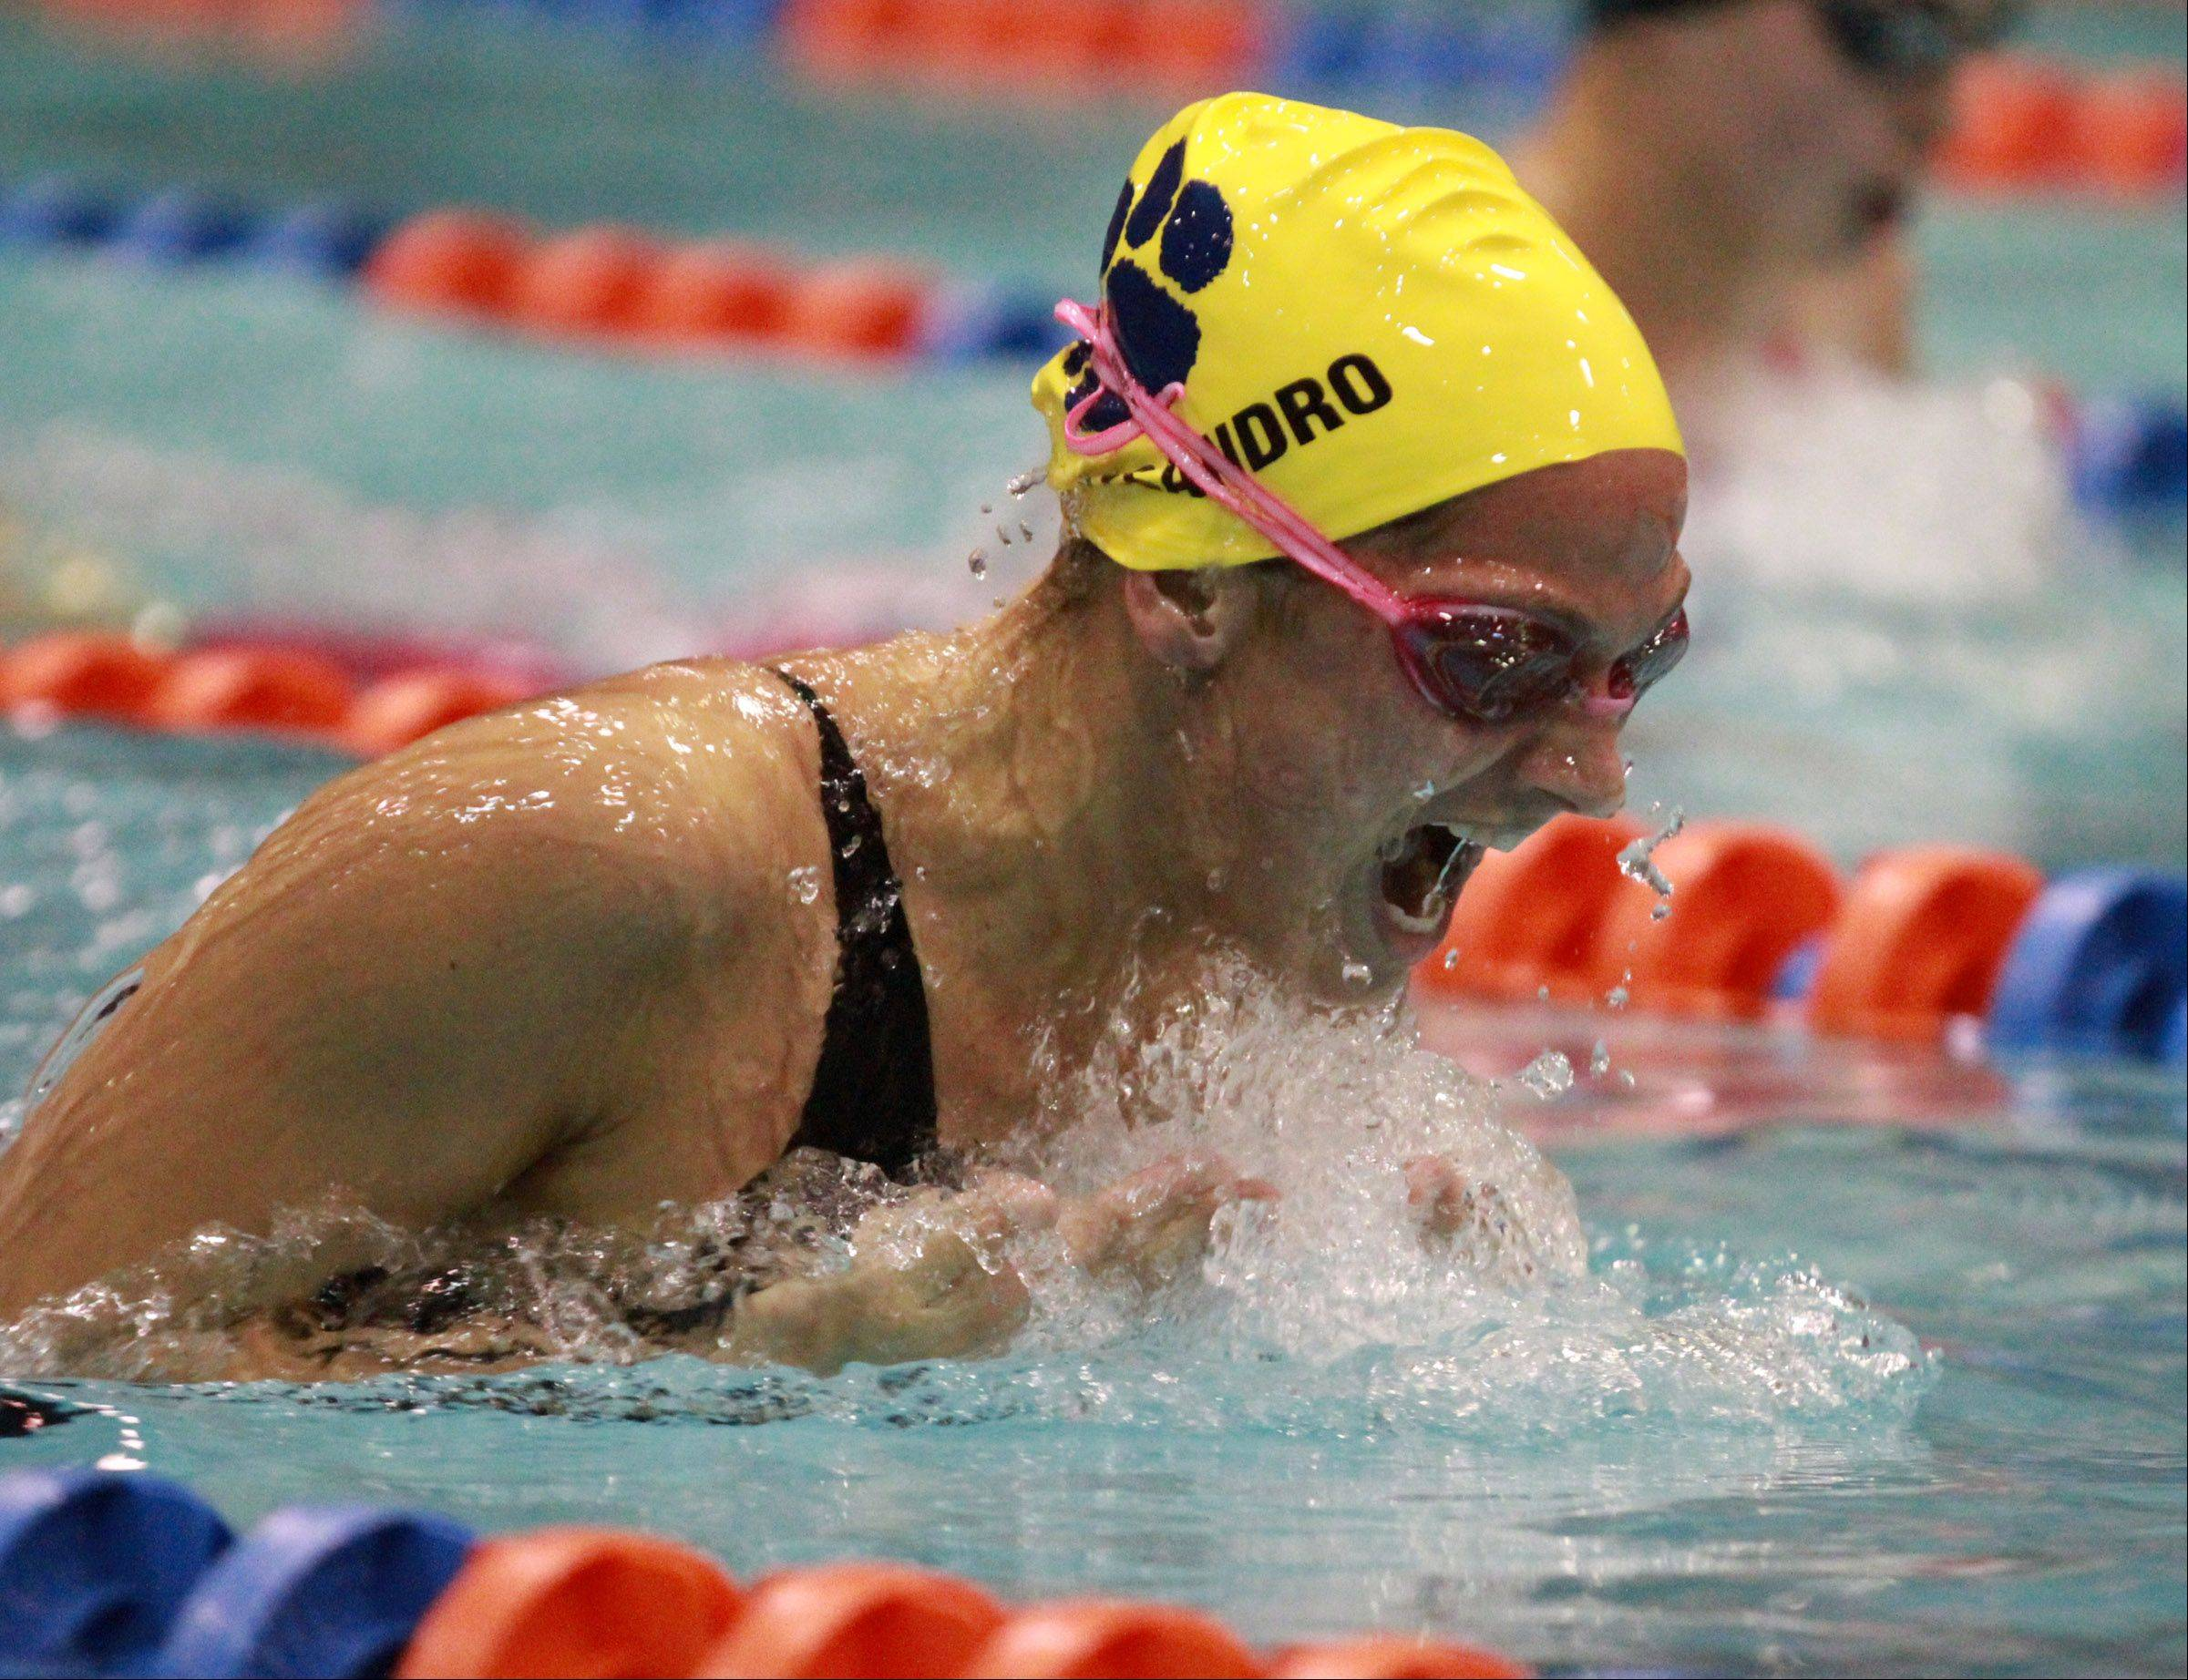 Benet's Kramer second after prelims